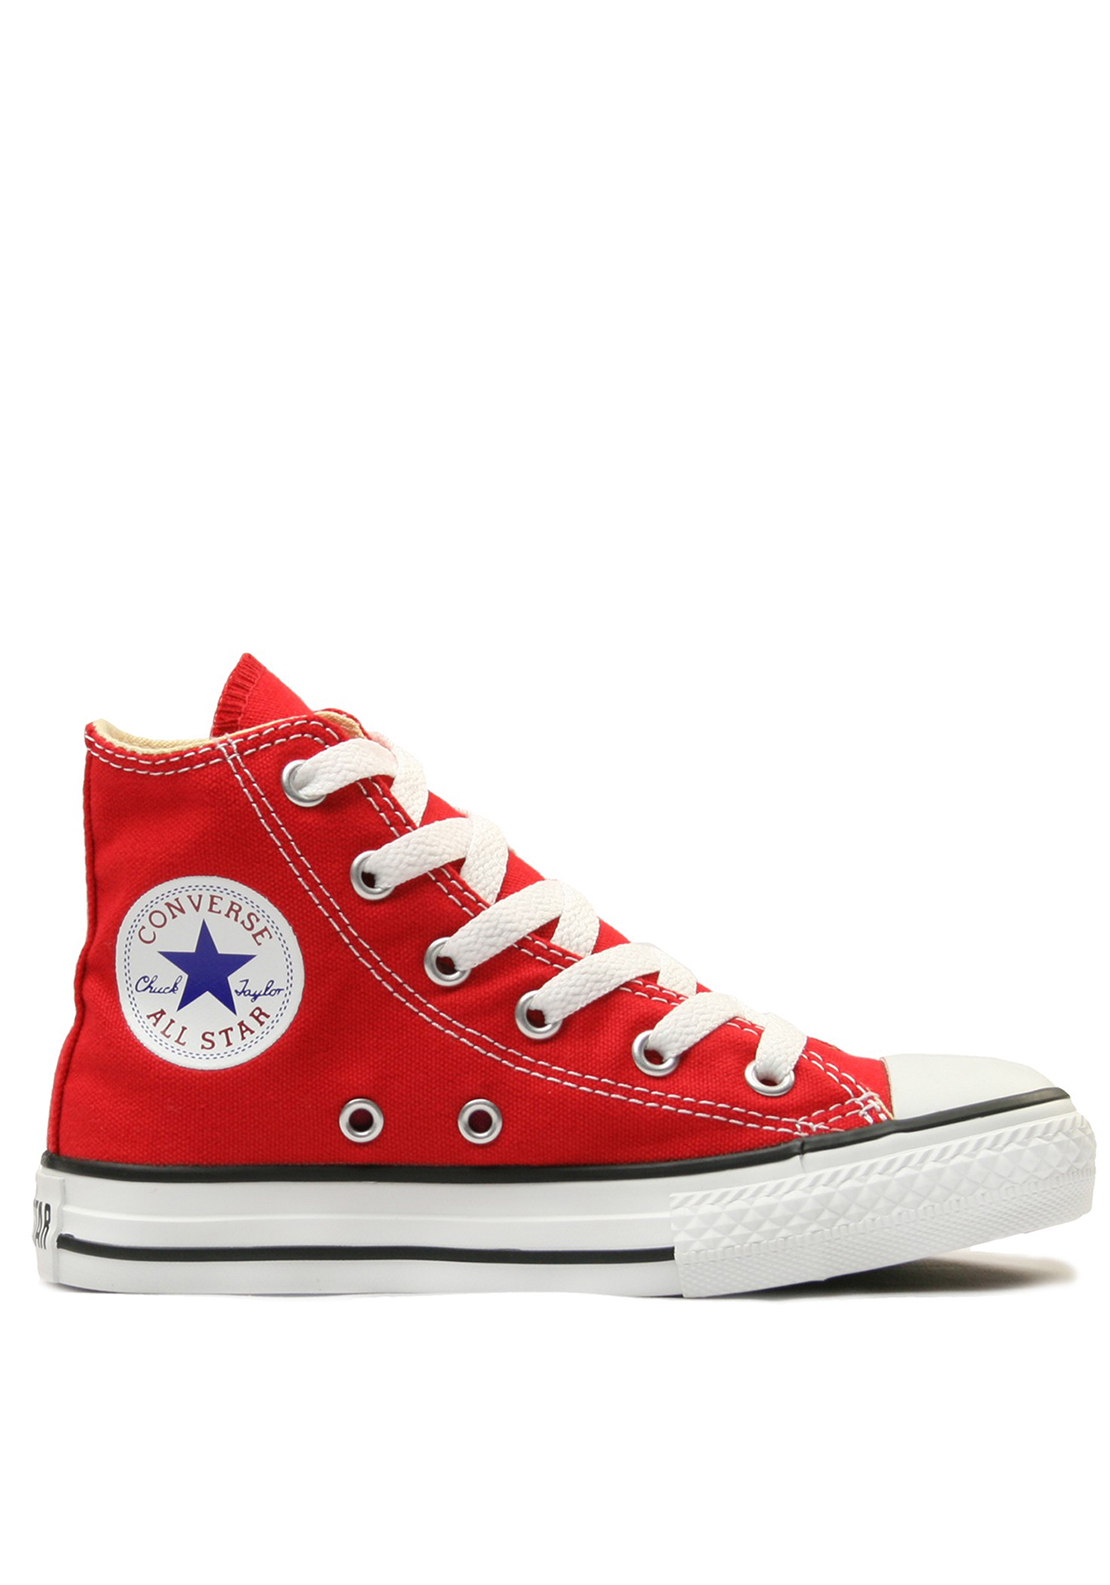 Converse All-Star Hi-Tops, Red